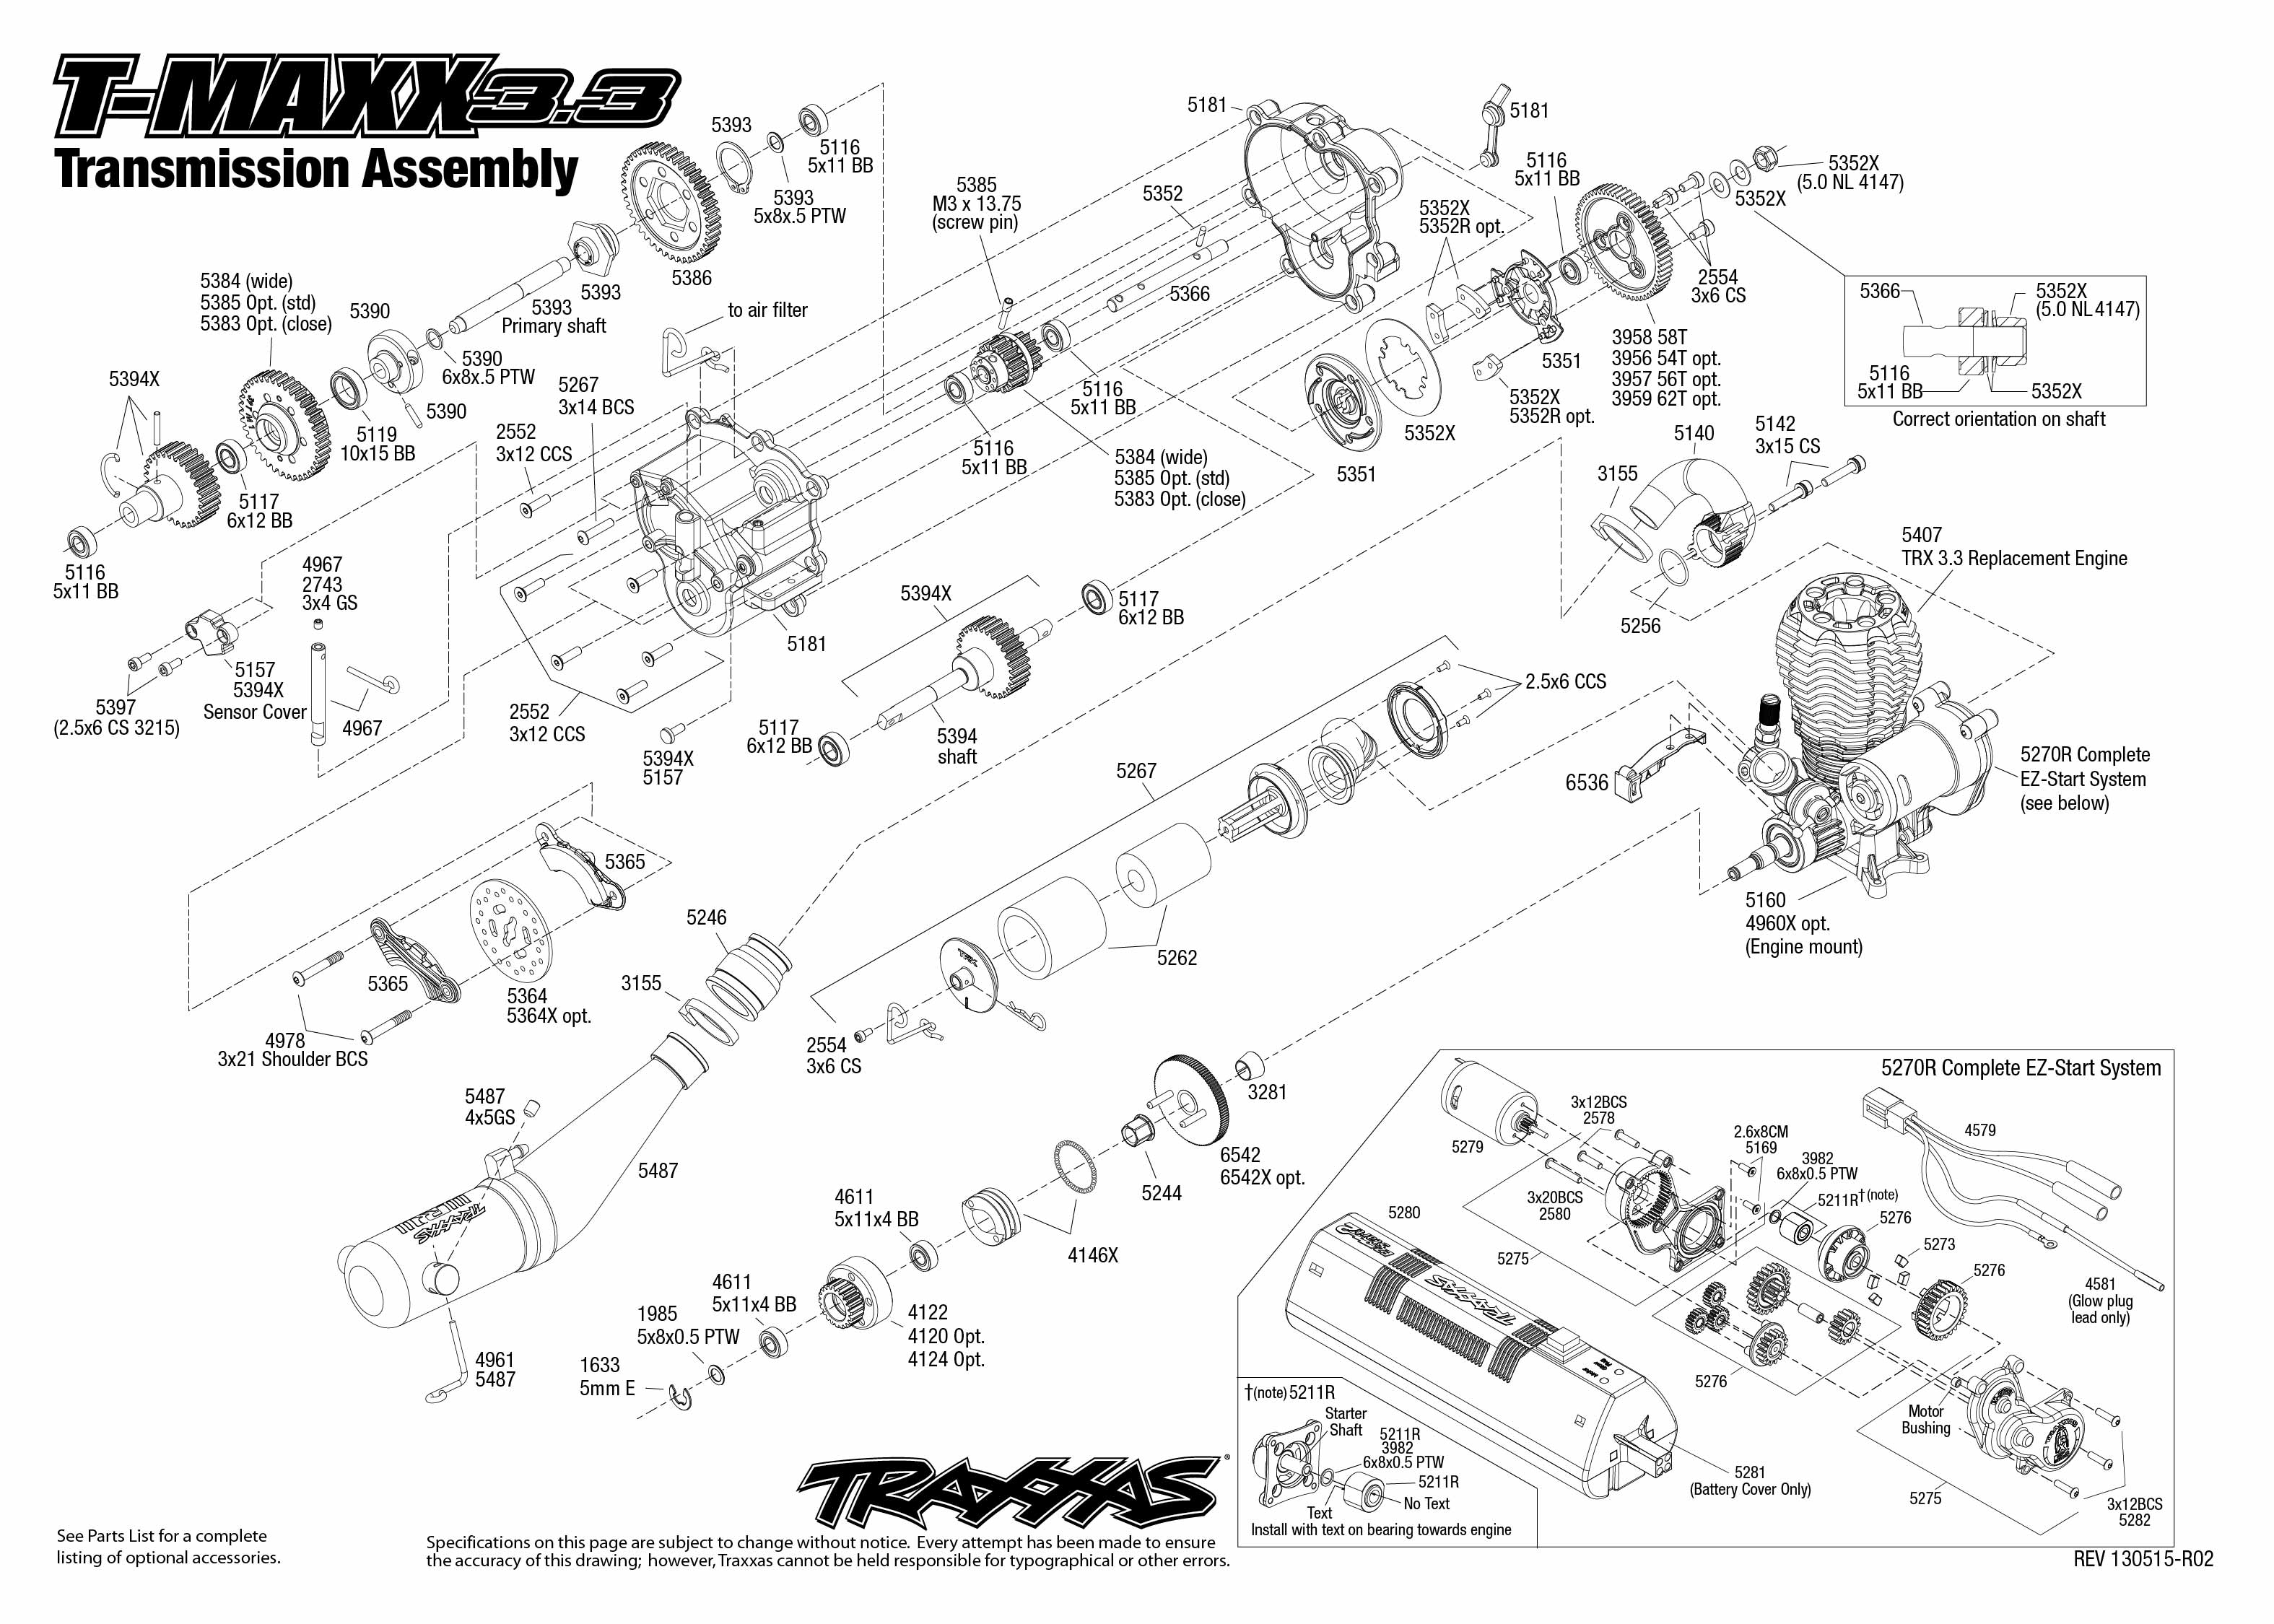 4907_Tmaxx33_TQi_explodedviews 130515_4907 Transmission Assembly 4907 transmission exploded view (t maxx 3 3) traxxas 3-Way Switch Wiring Diagram for Switch To at gsmportal.co